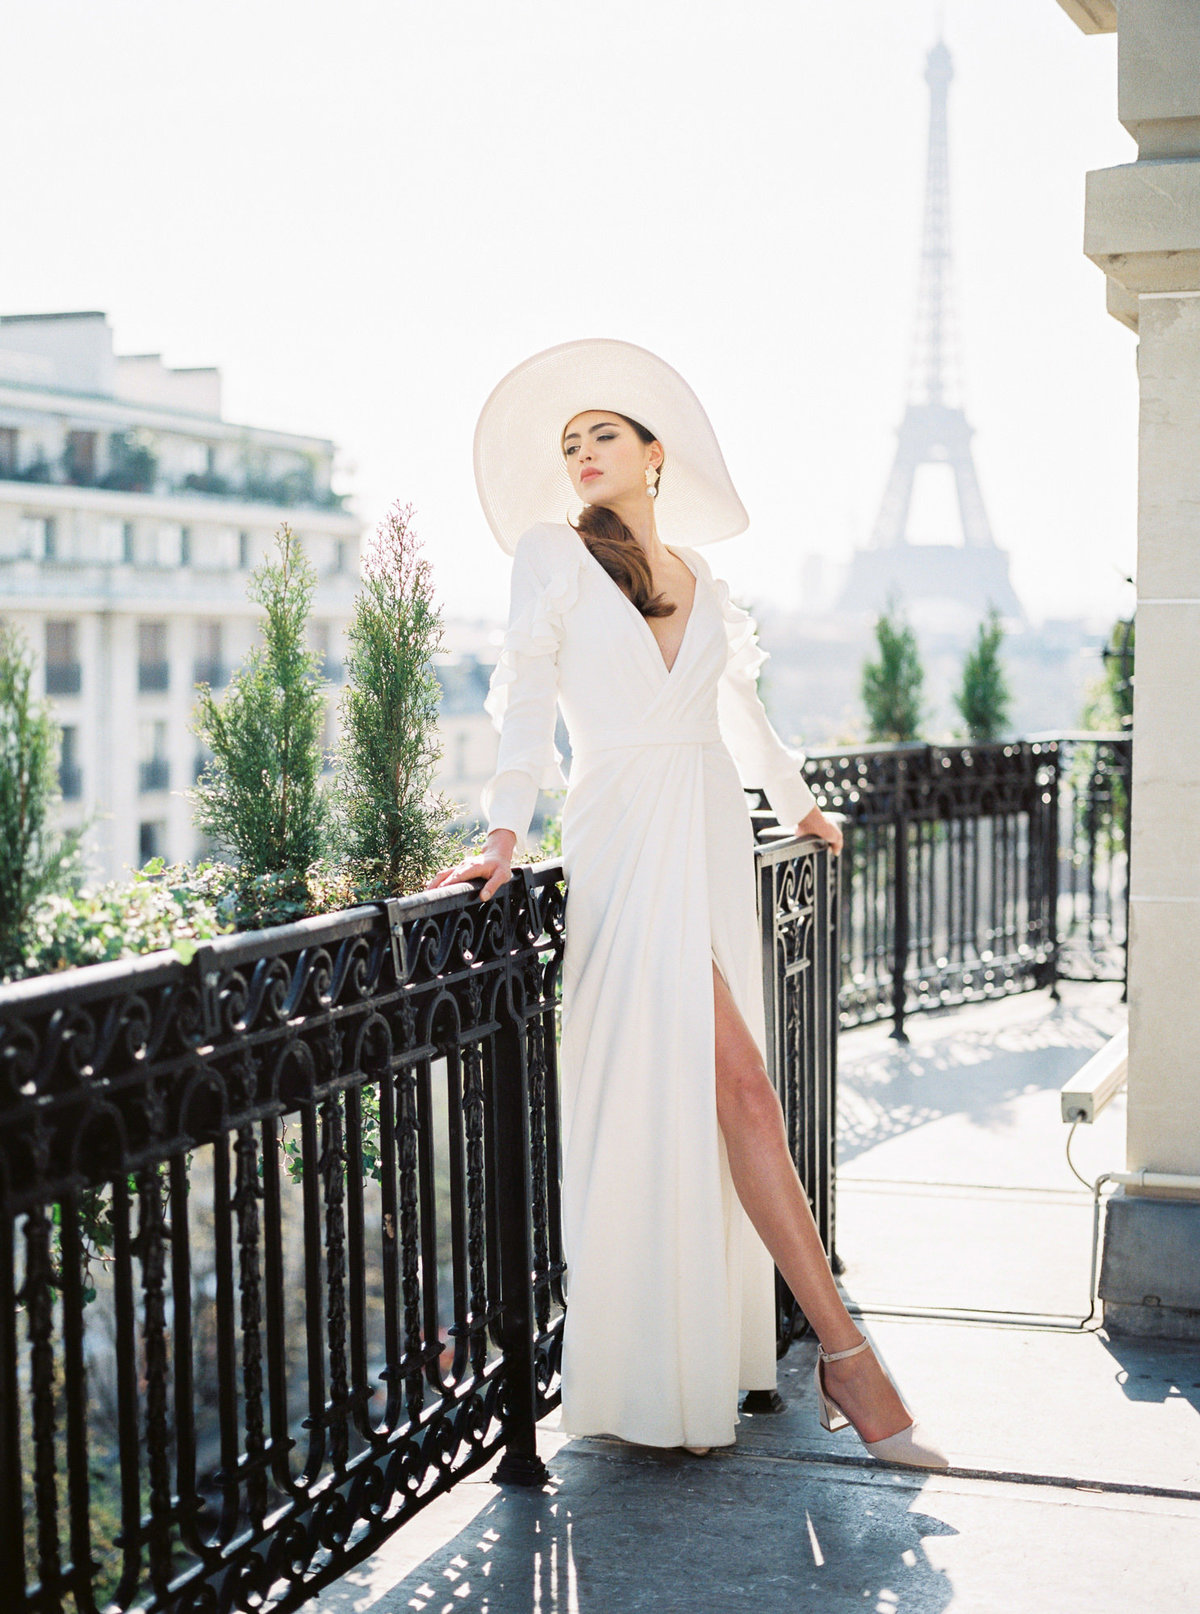 Paris_wedding_photographer_claire_Morris_131